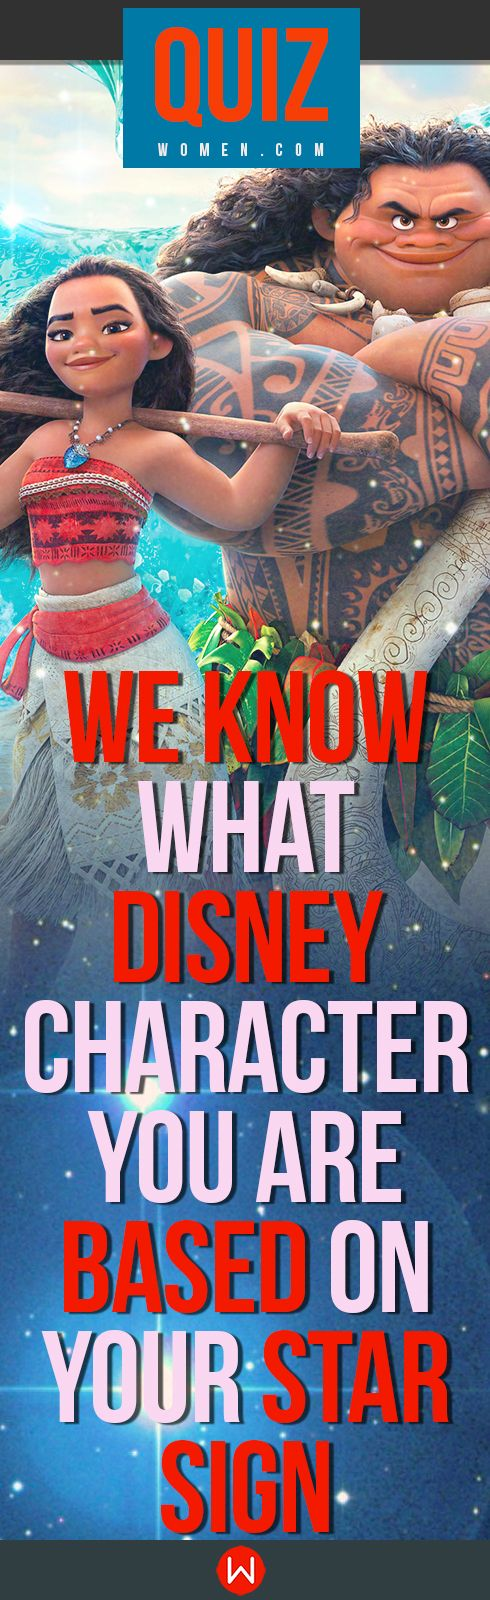 Come take this fun Disney personality quiz based on your star sign zodiac horoscope! Disney princess quiz, which disney princess are you? Disney character test! Moana, Rapunzel, Ariel